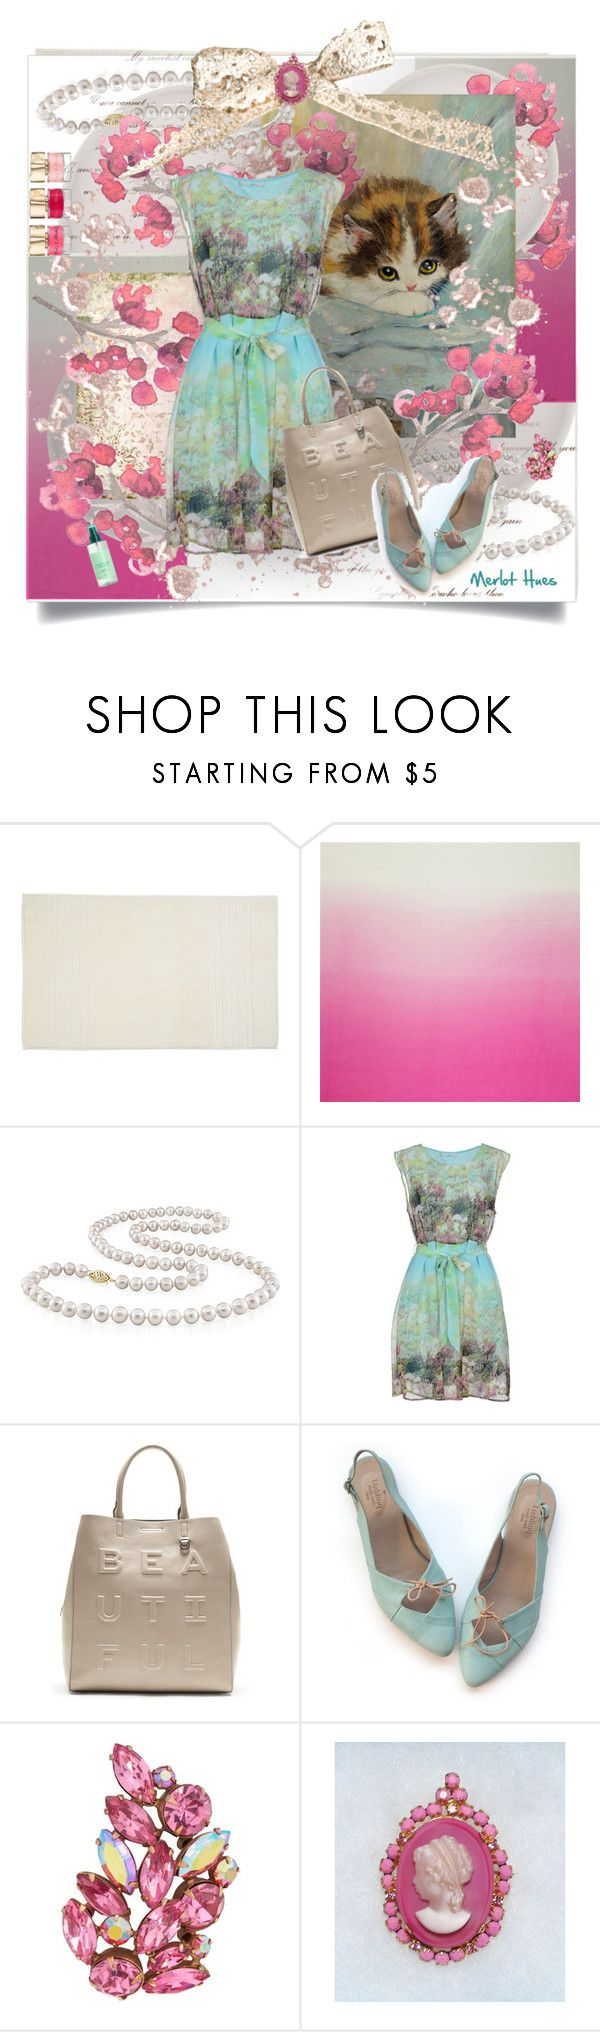 """""""Sugar & Spice"""" by merlothues ❤ liked on Polyvore featuring Christy, Miadora, Appartamento 50, Banana Republic, Susan Caplan Vintage and H&M"""